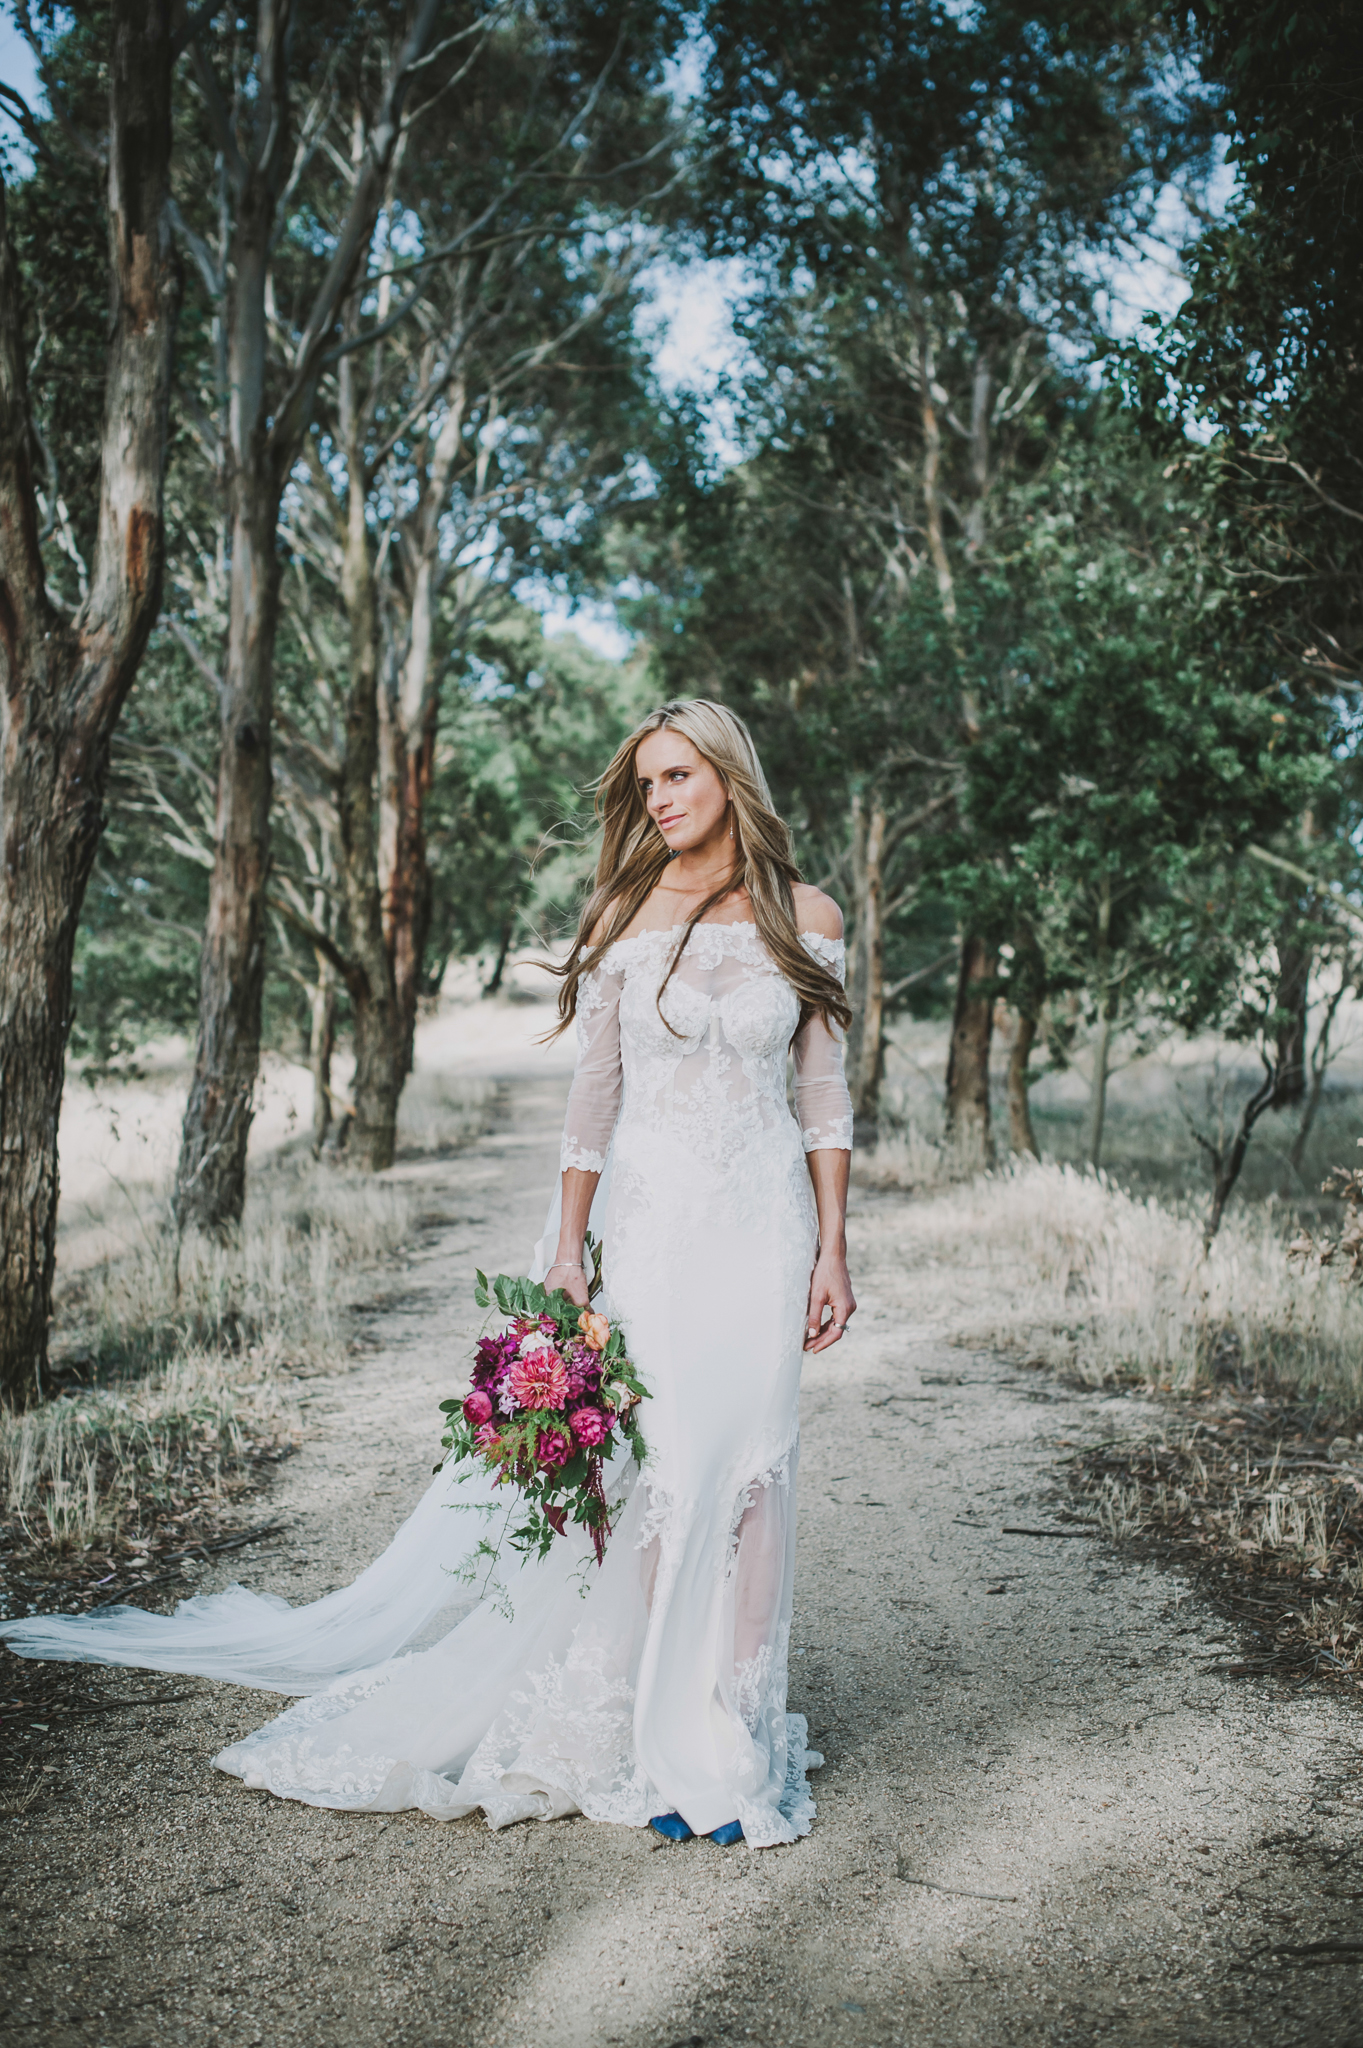 WEB Shae + Mitch Bush Festival Wedding She Takes Pictures He Makes Films Sooti Events and Styling-71.jpg